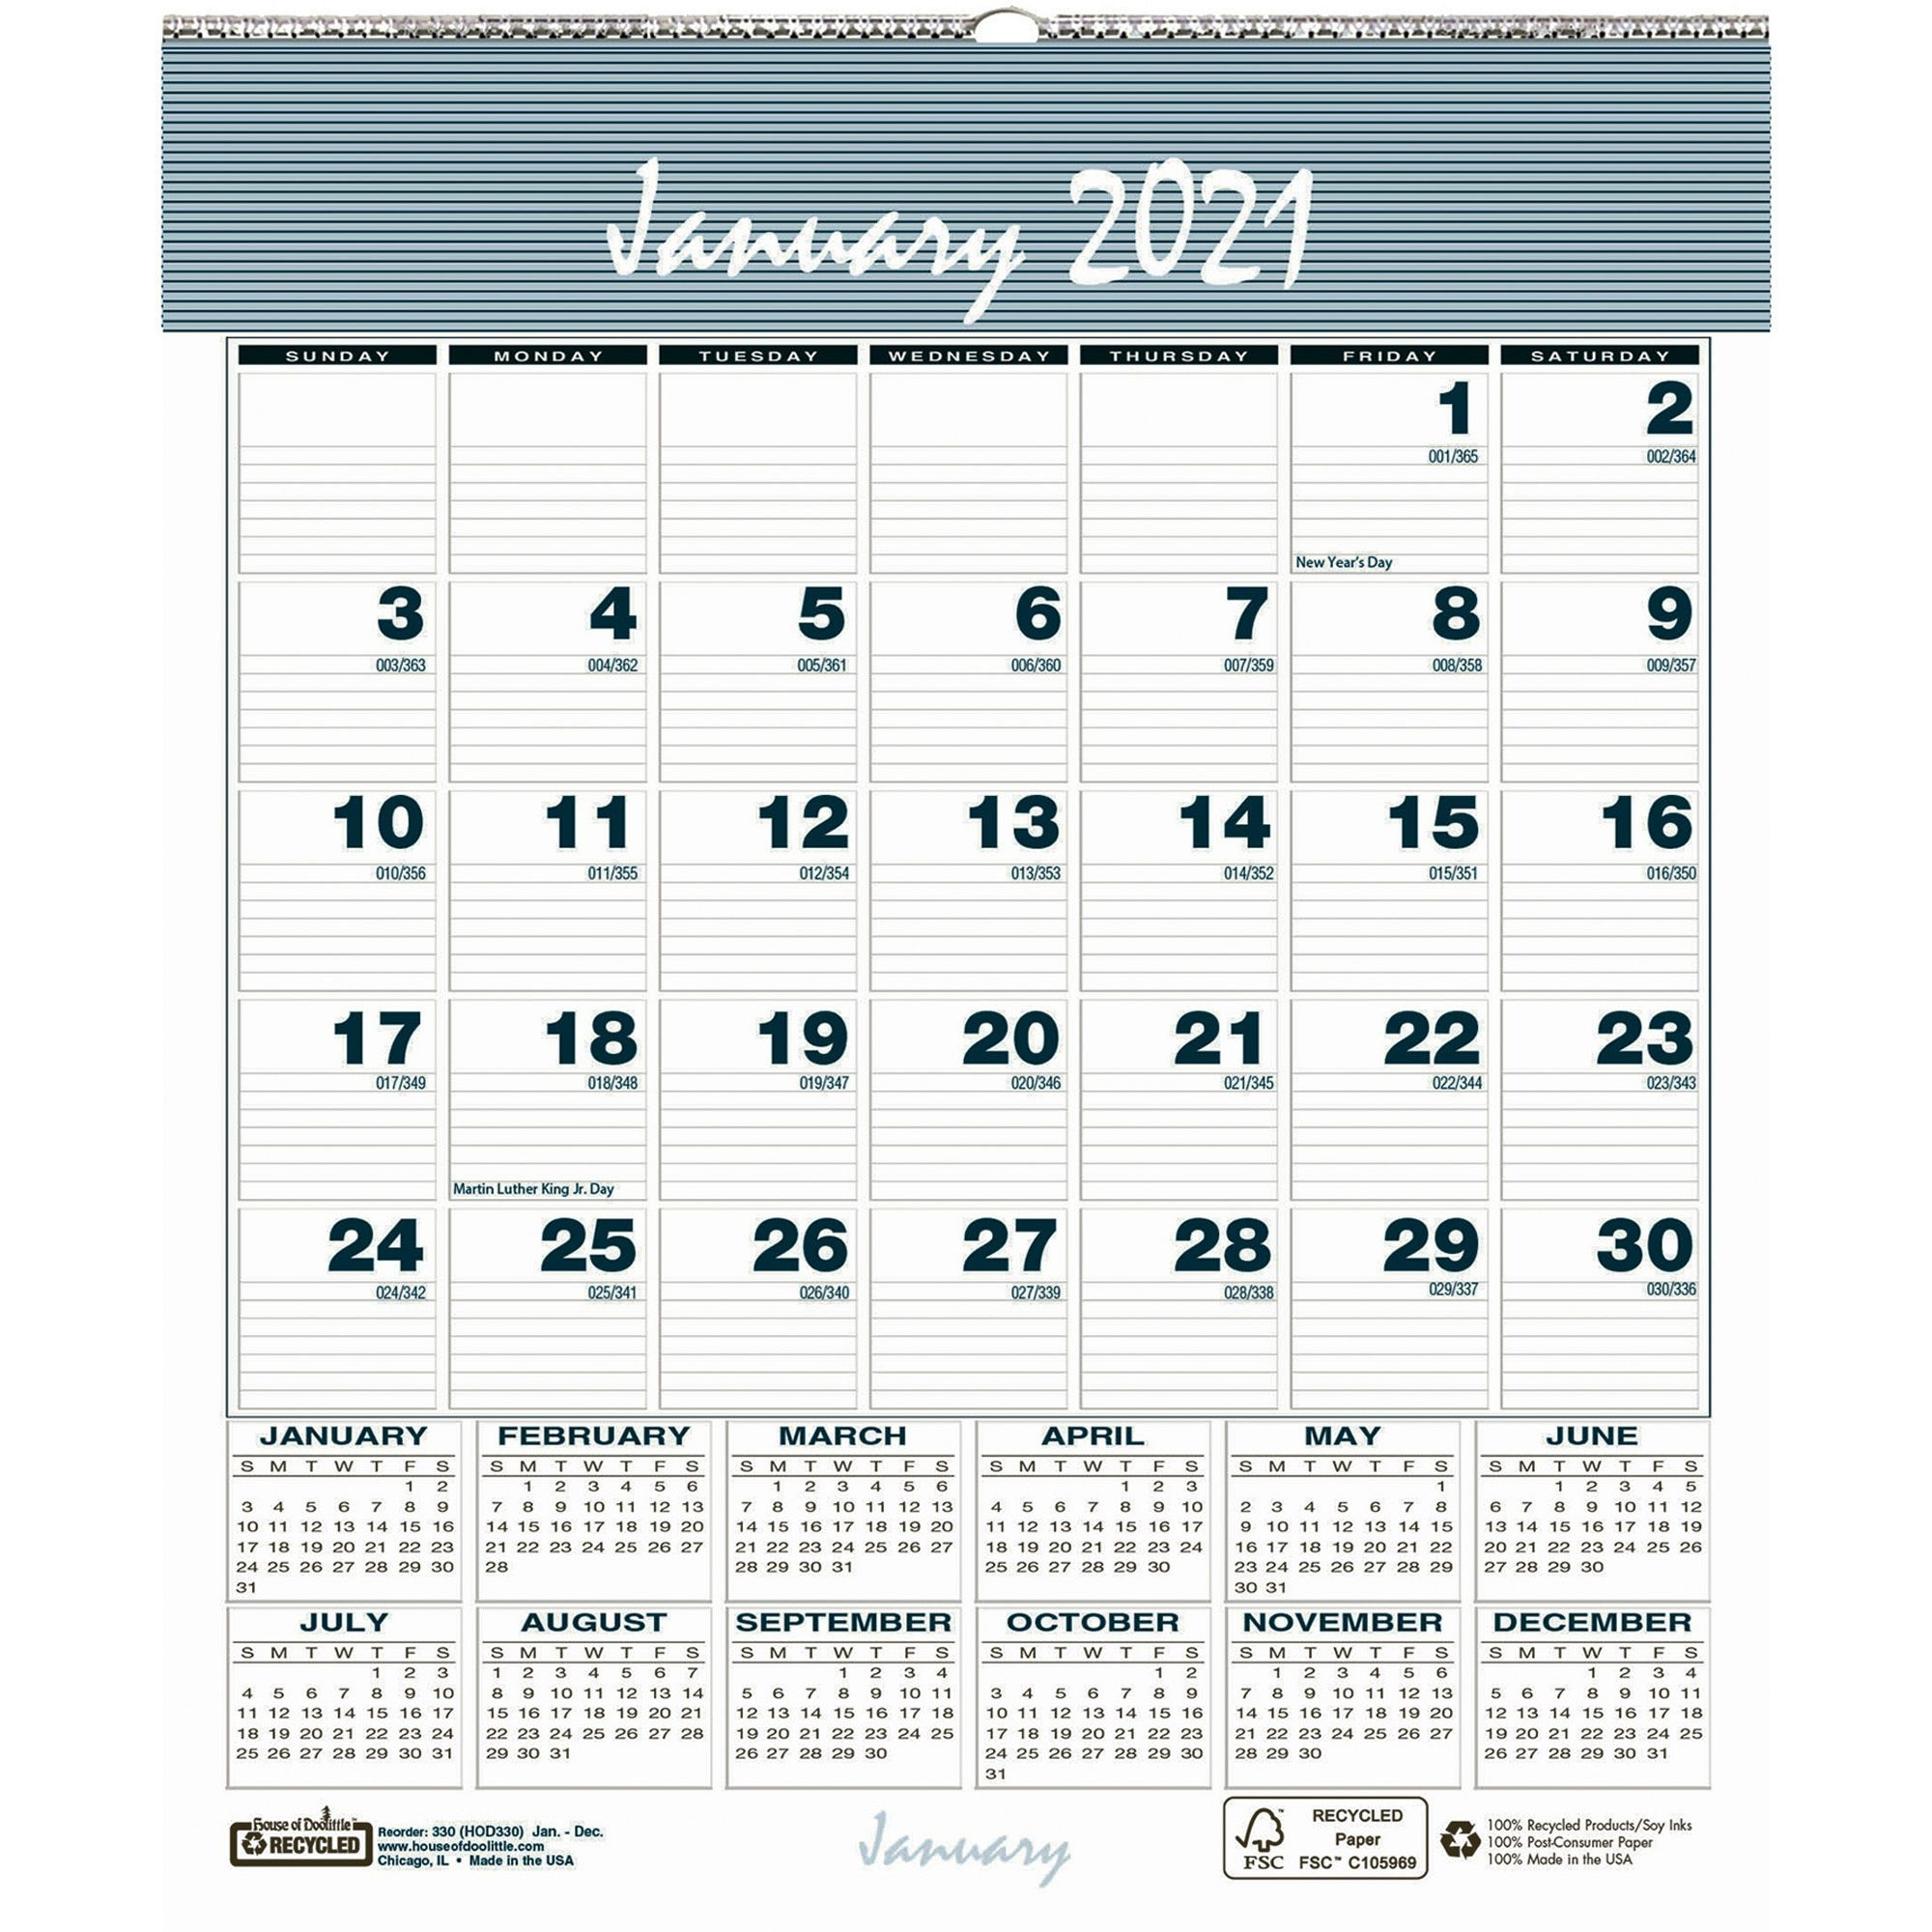 House Of Doolittle Bar Harbor Monthly Wall Calendar - Julian Dates -  Monthly - 1 Year - January 2021 Till December 2021 - 1 Month Single Page  Layout -